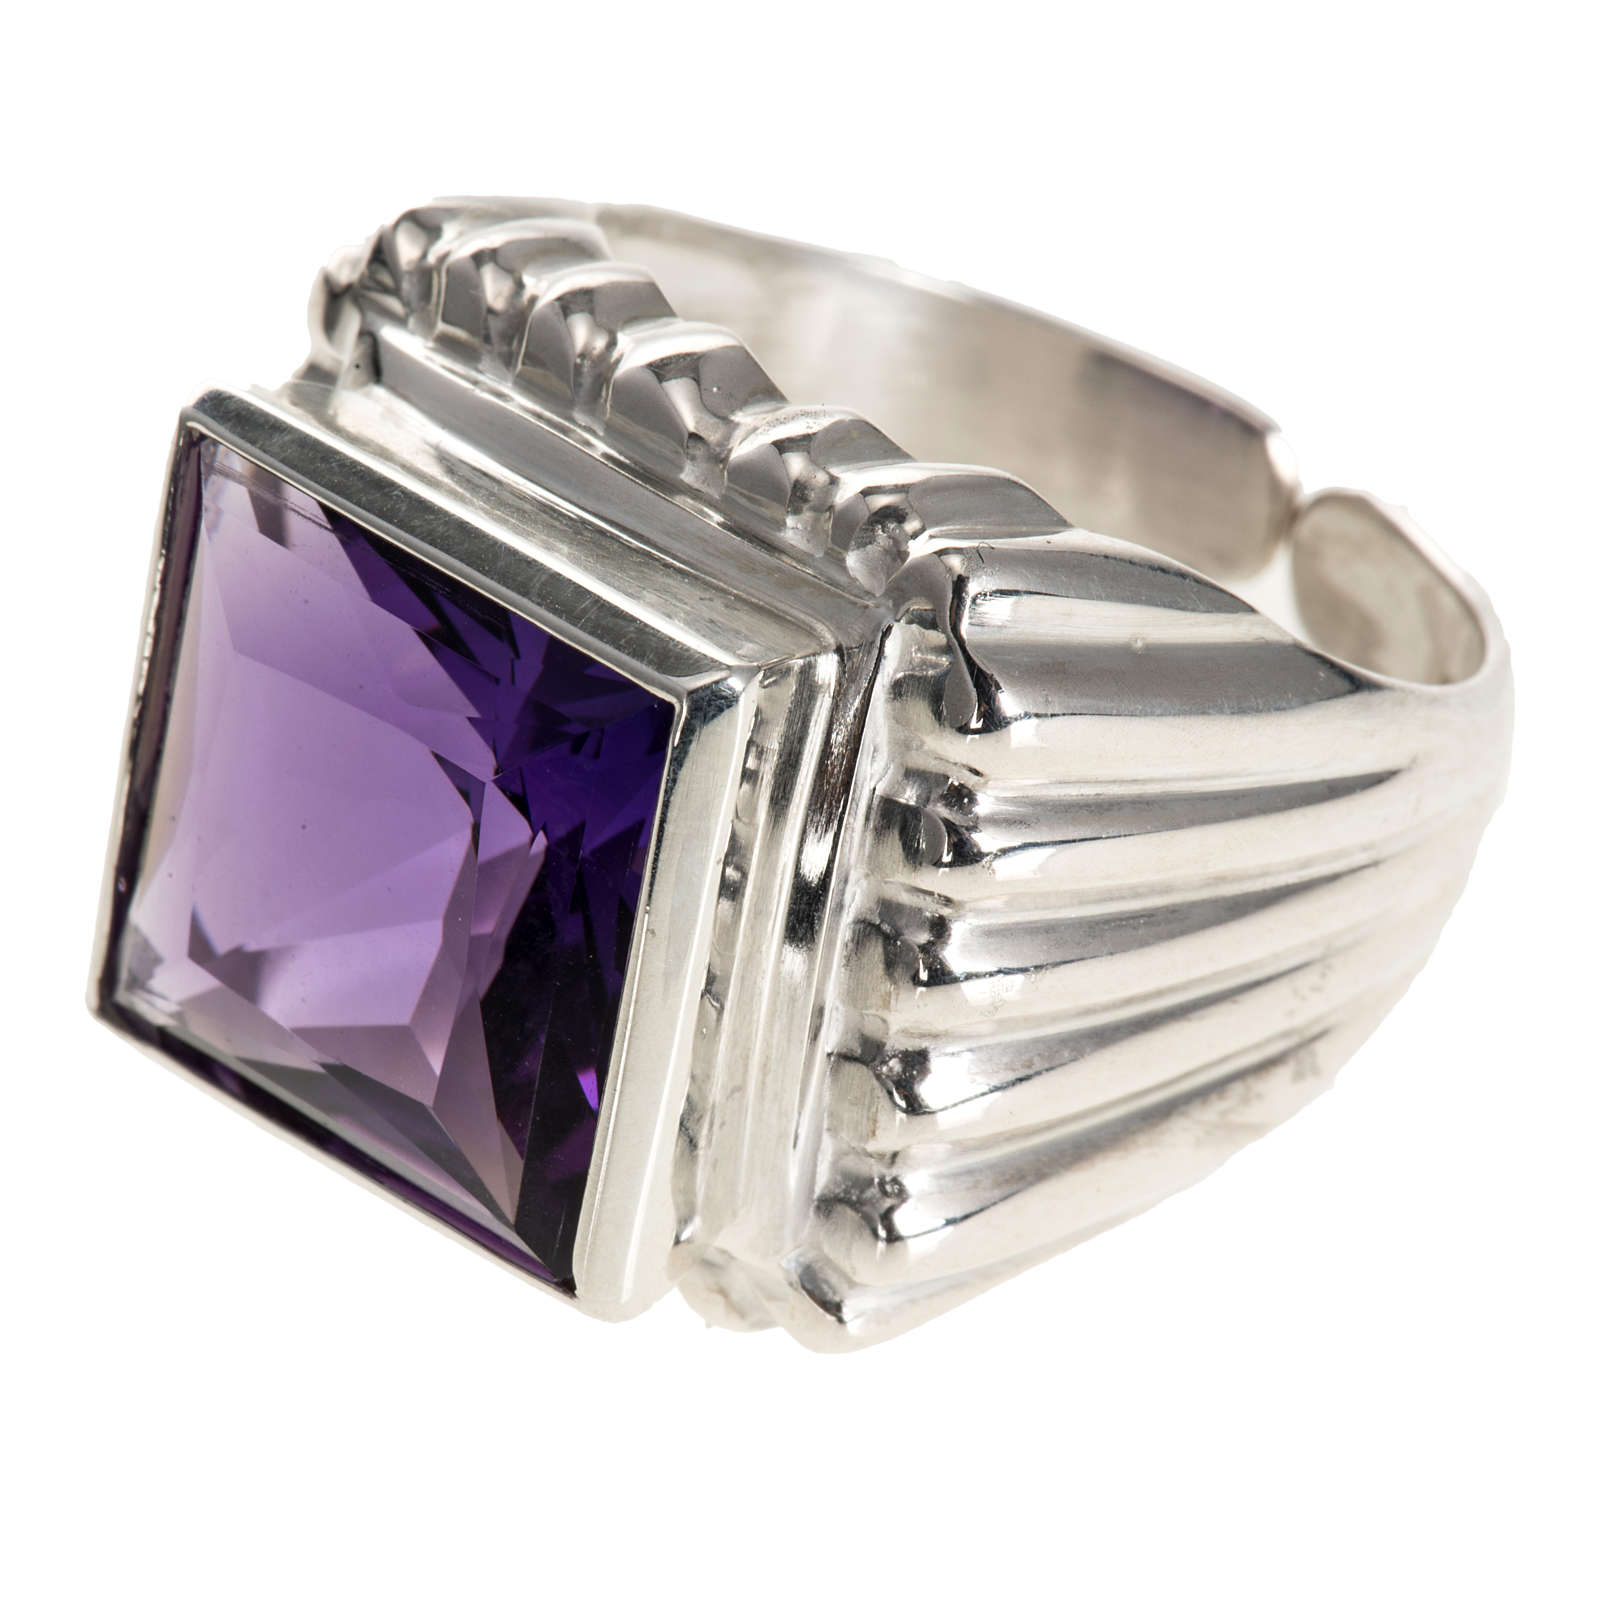 Bishop's ring silver coloured, in 800 silver with amethyst 3